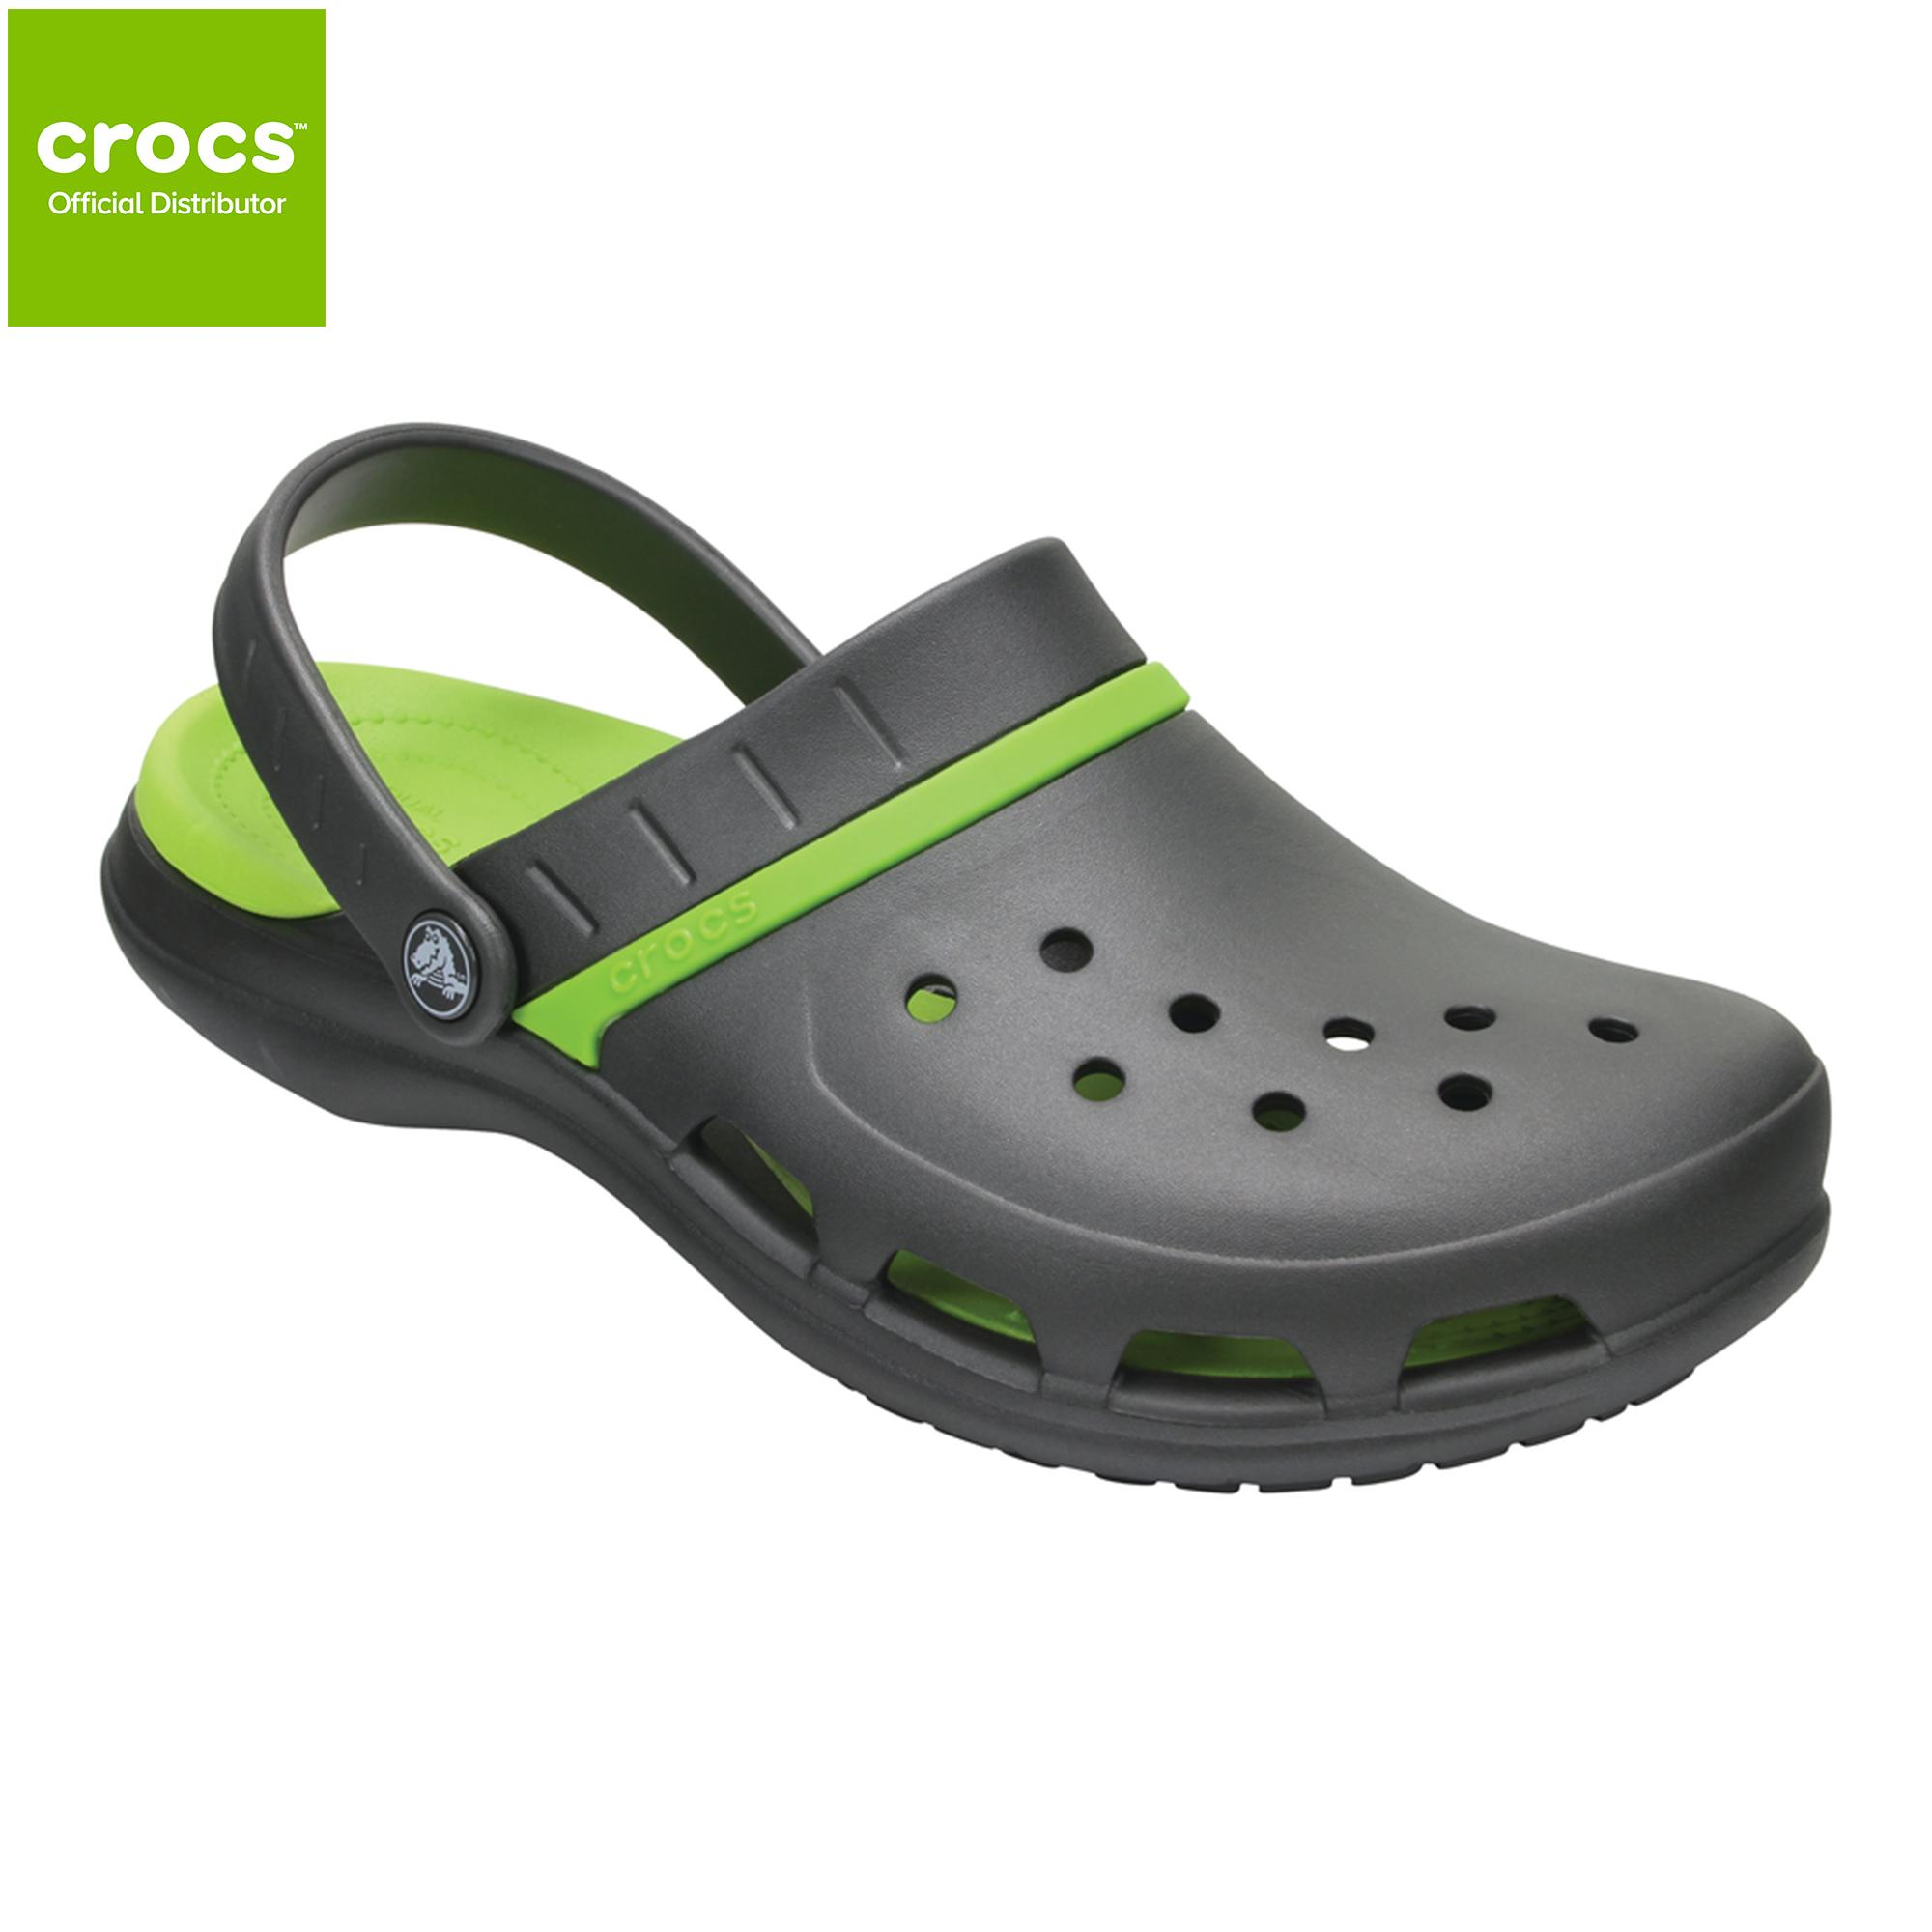 928fd7c4f77a Crocs Philippines  Crocs price list - Crocs Flats